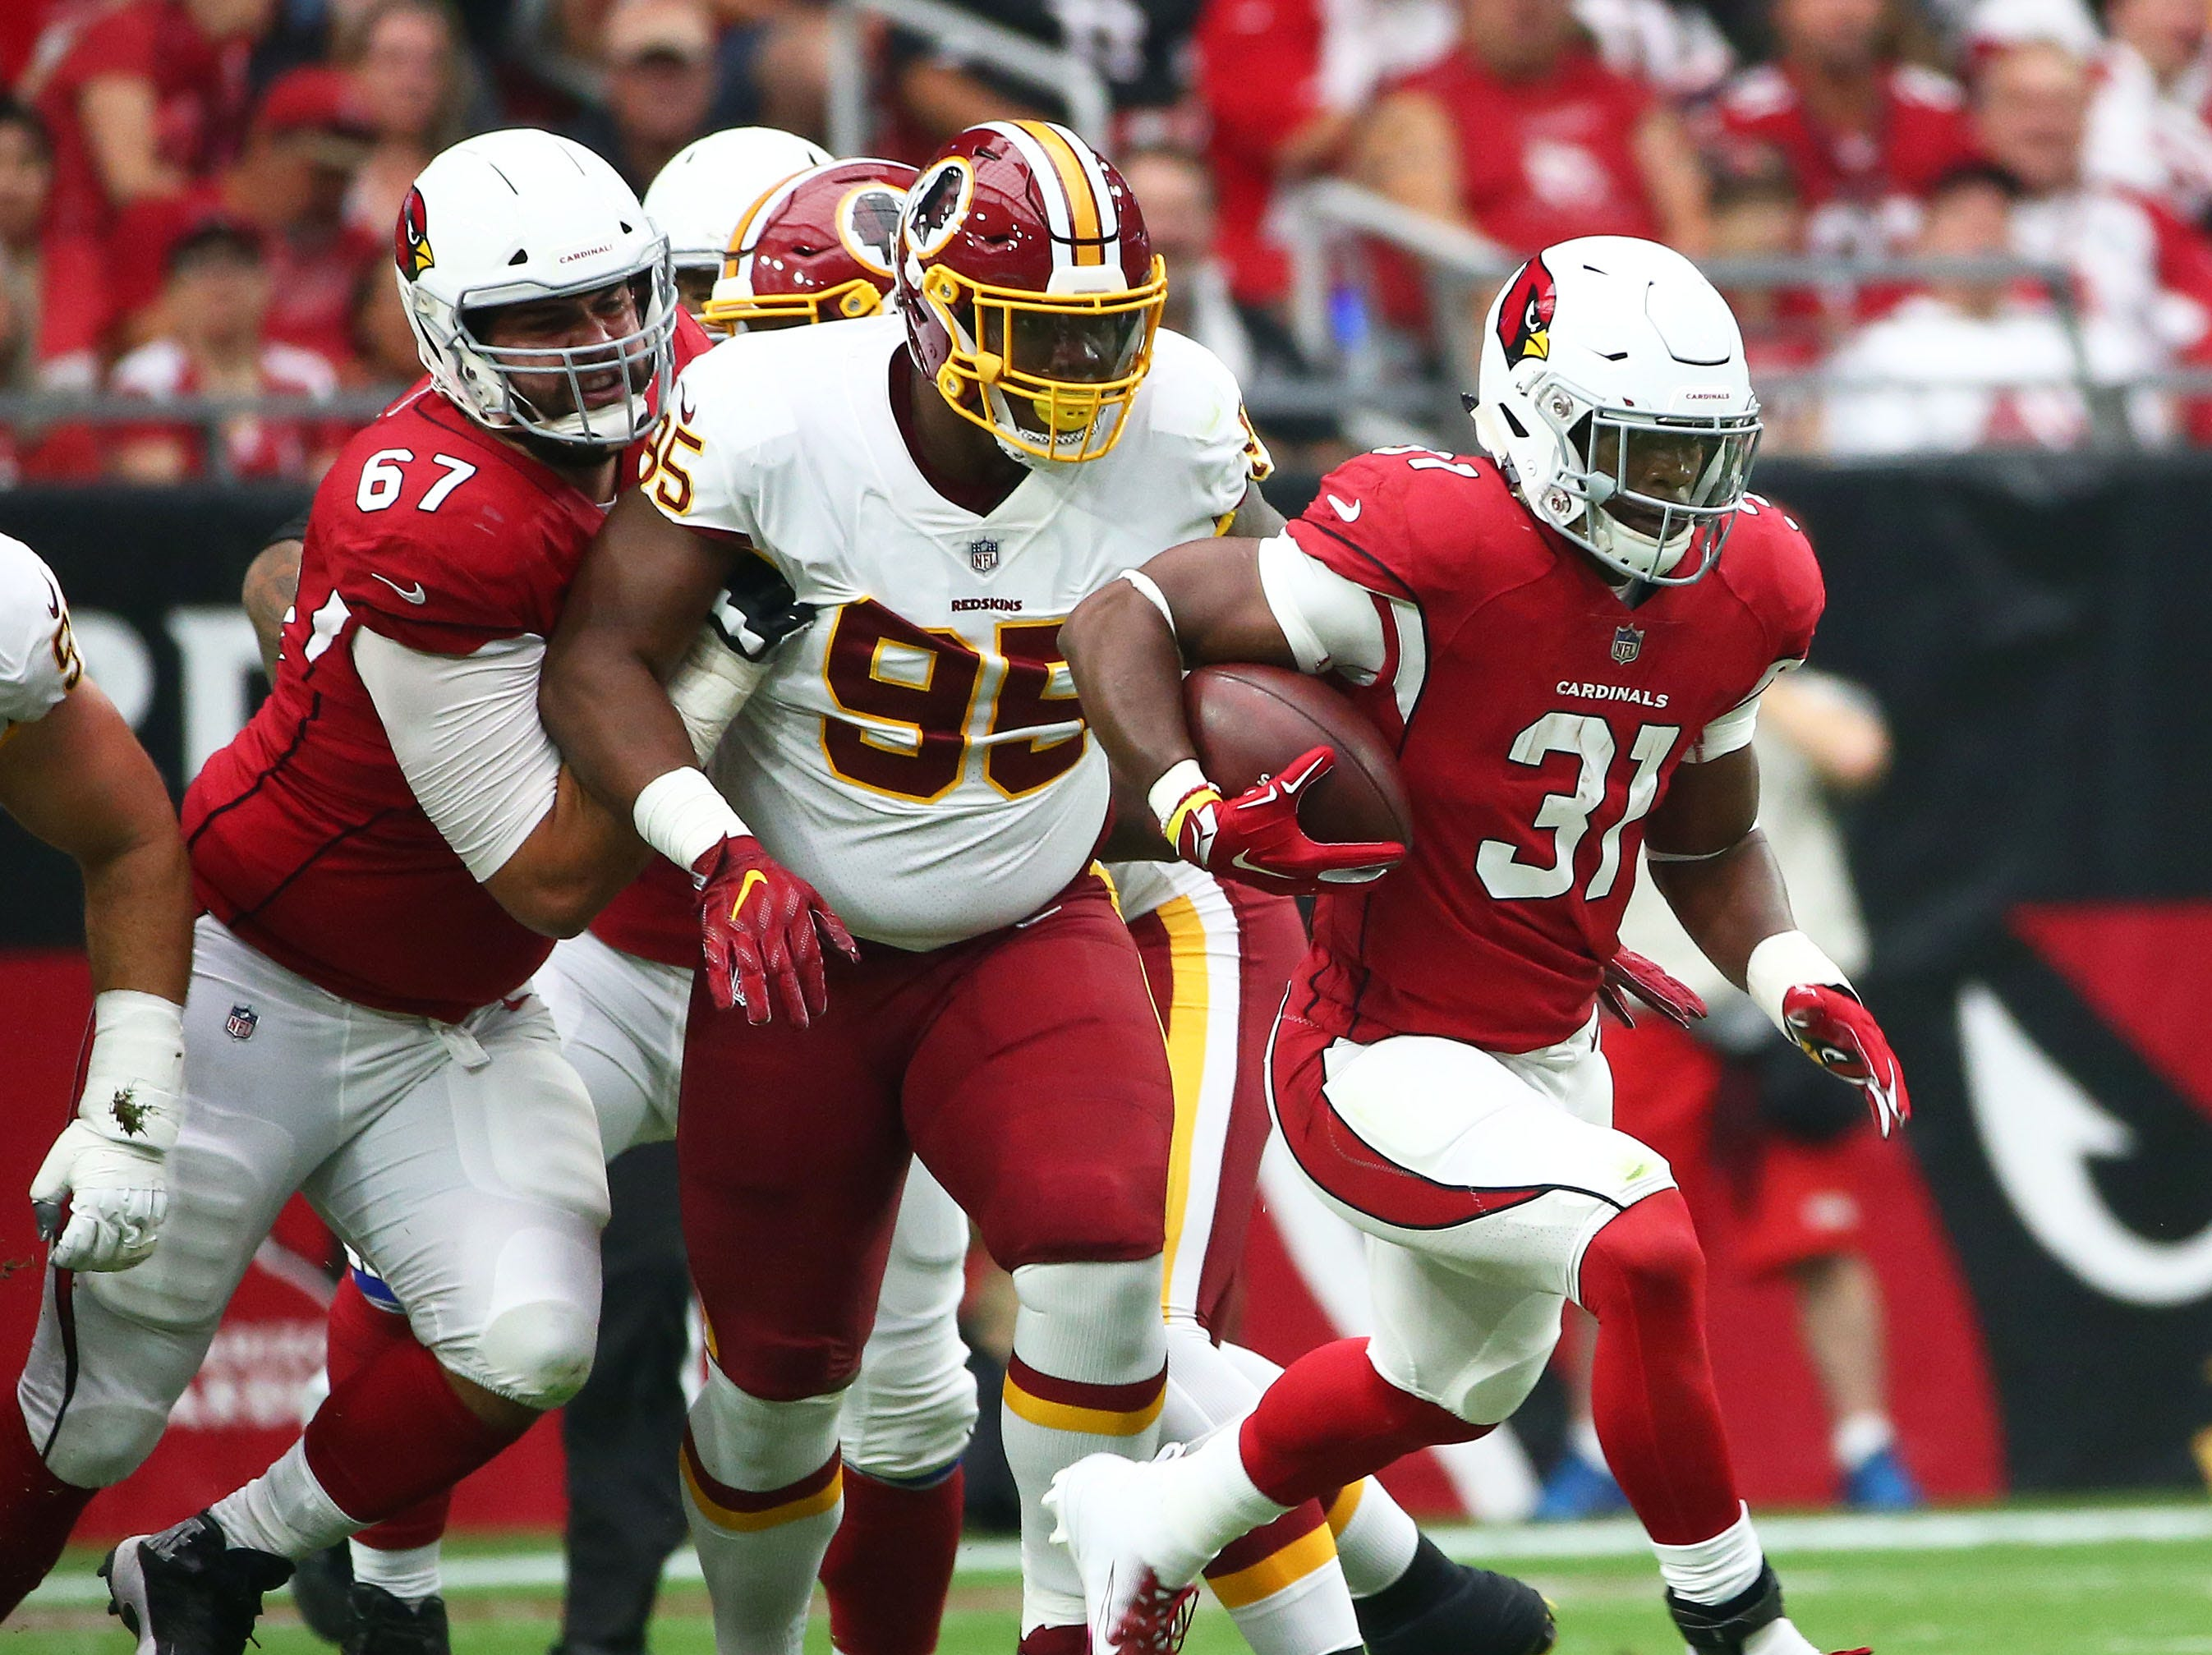 Arizona Cardinals running back David Johnson runs the ball against the Washington Redskins in the first half at State Farm Stadium.